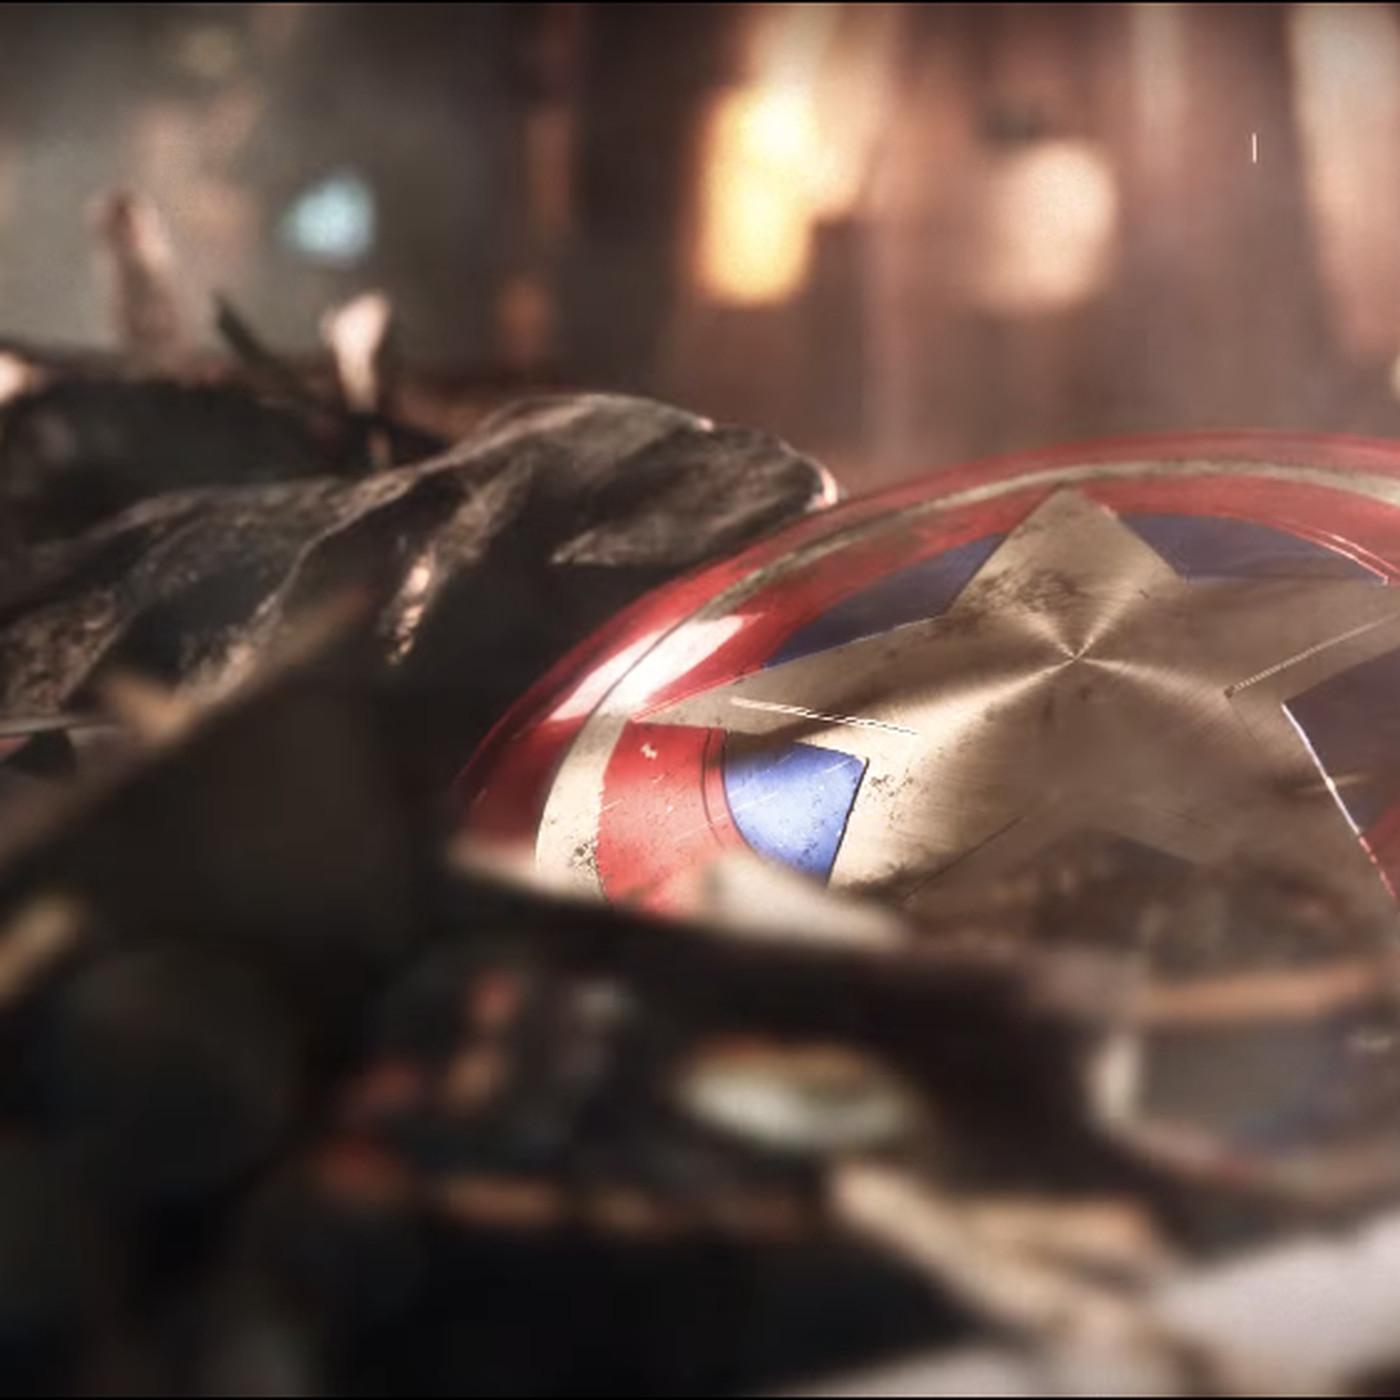 Square Enix teams up with Marvel for The Avengers project